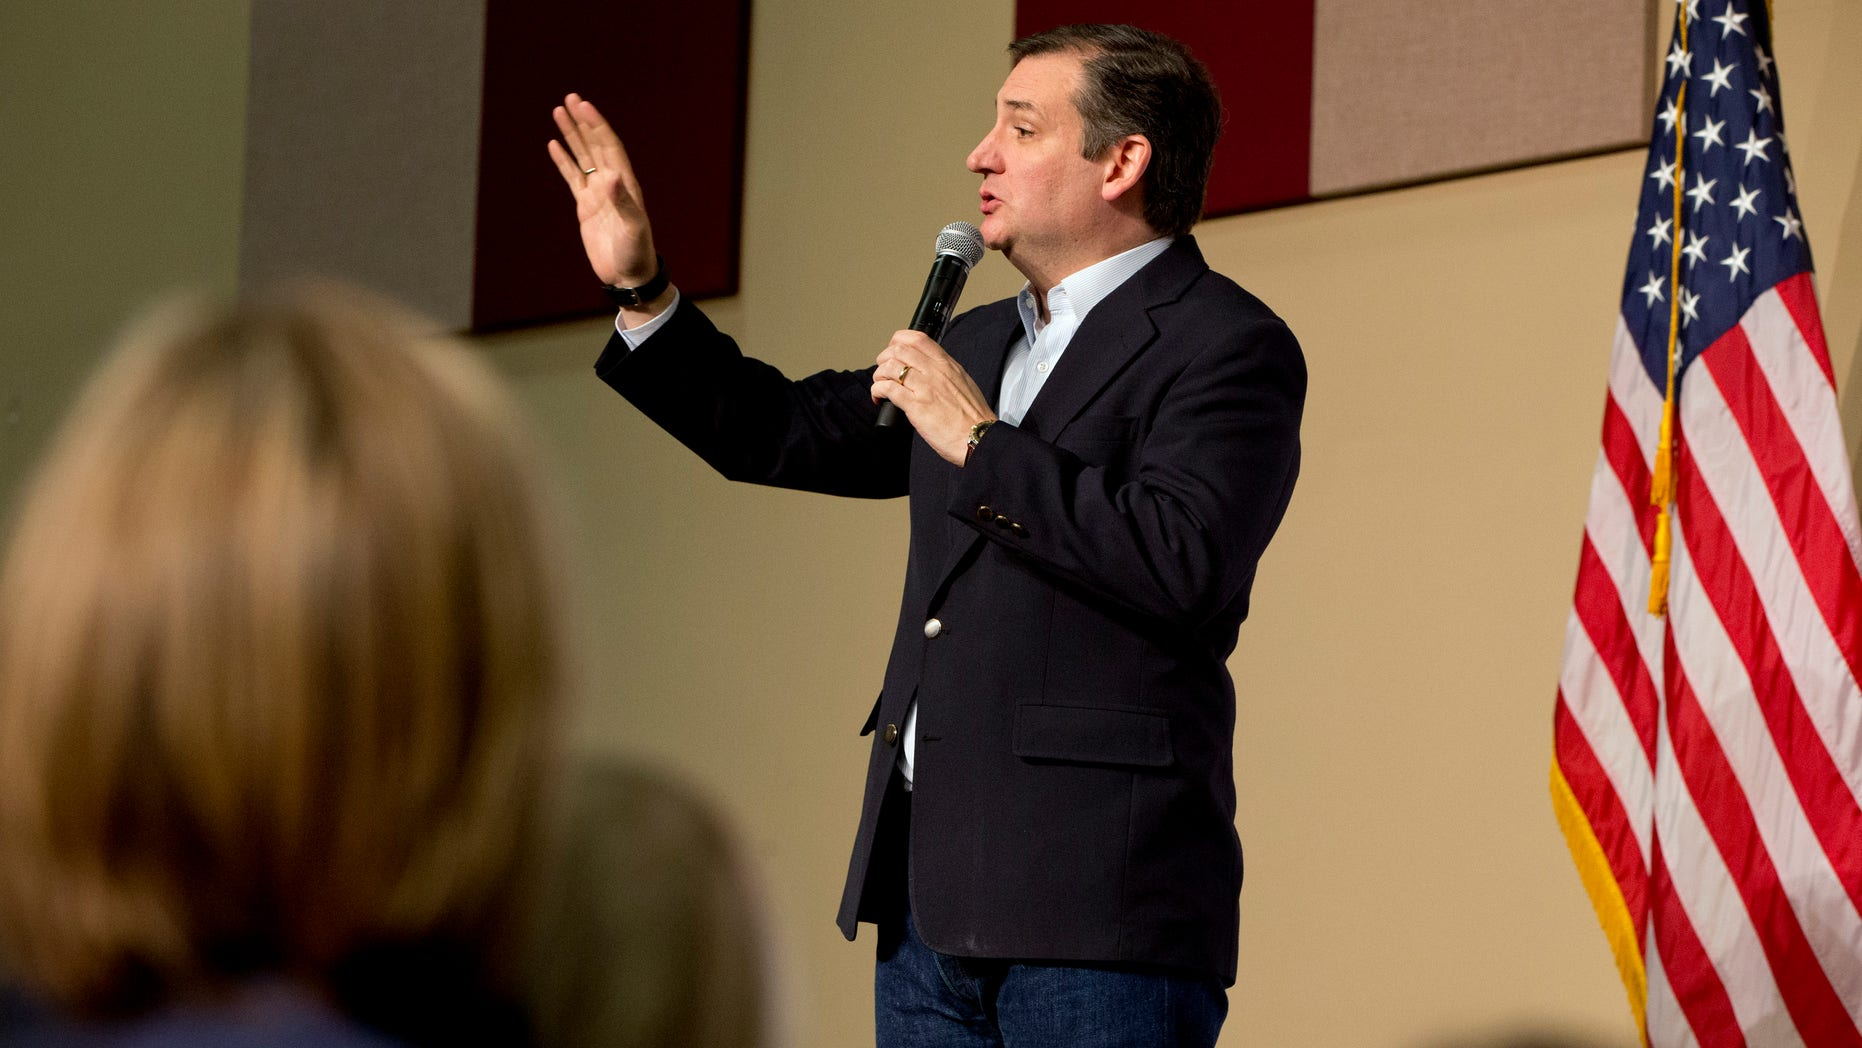 Feb 15, 2016: Republican presidential candidate Sen. Ted Cruz, R-Texas, speaks at a rally at the Southeastern Institute of Manufacturing & Technology in Florence, S.C.